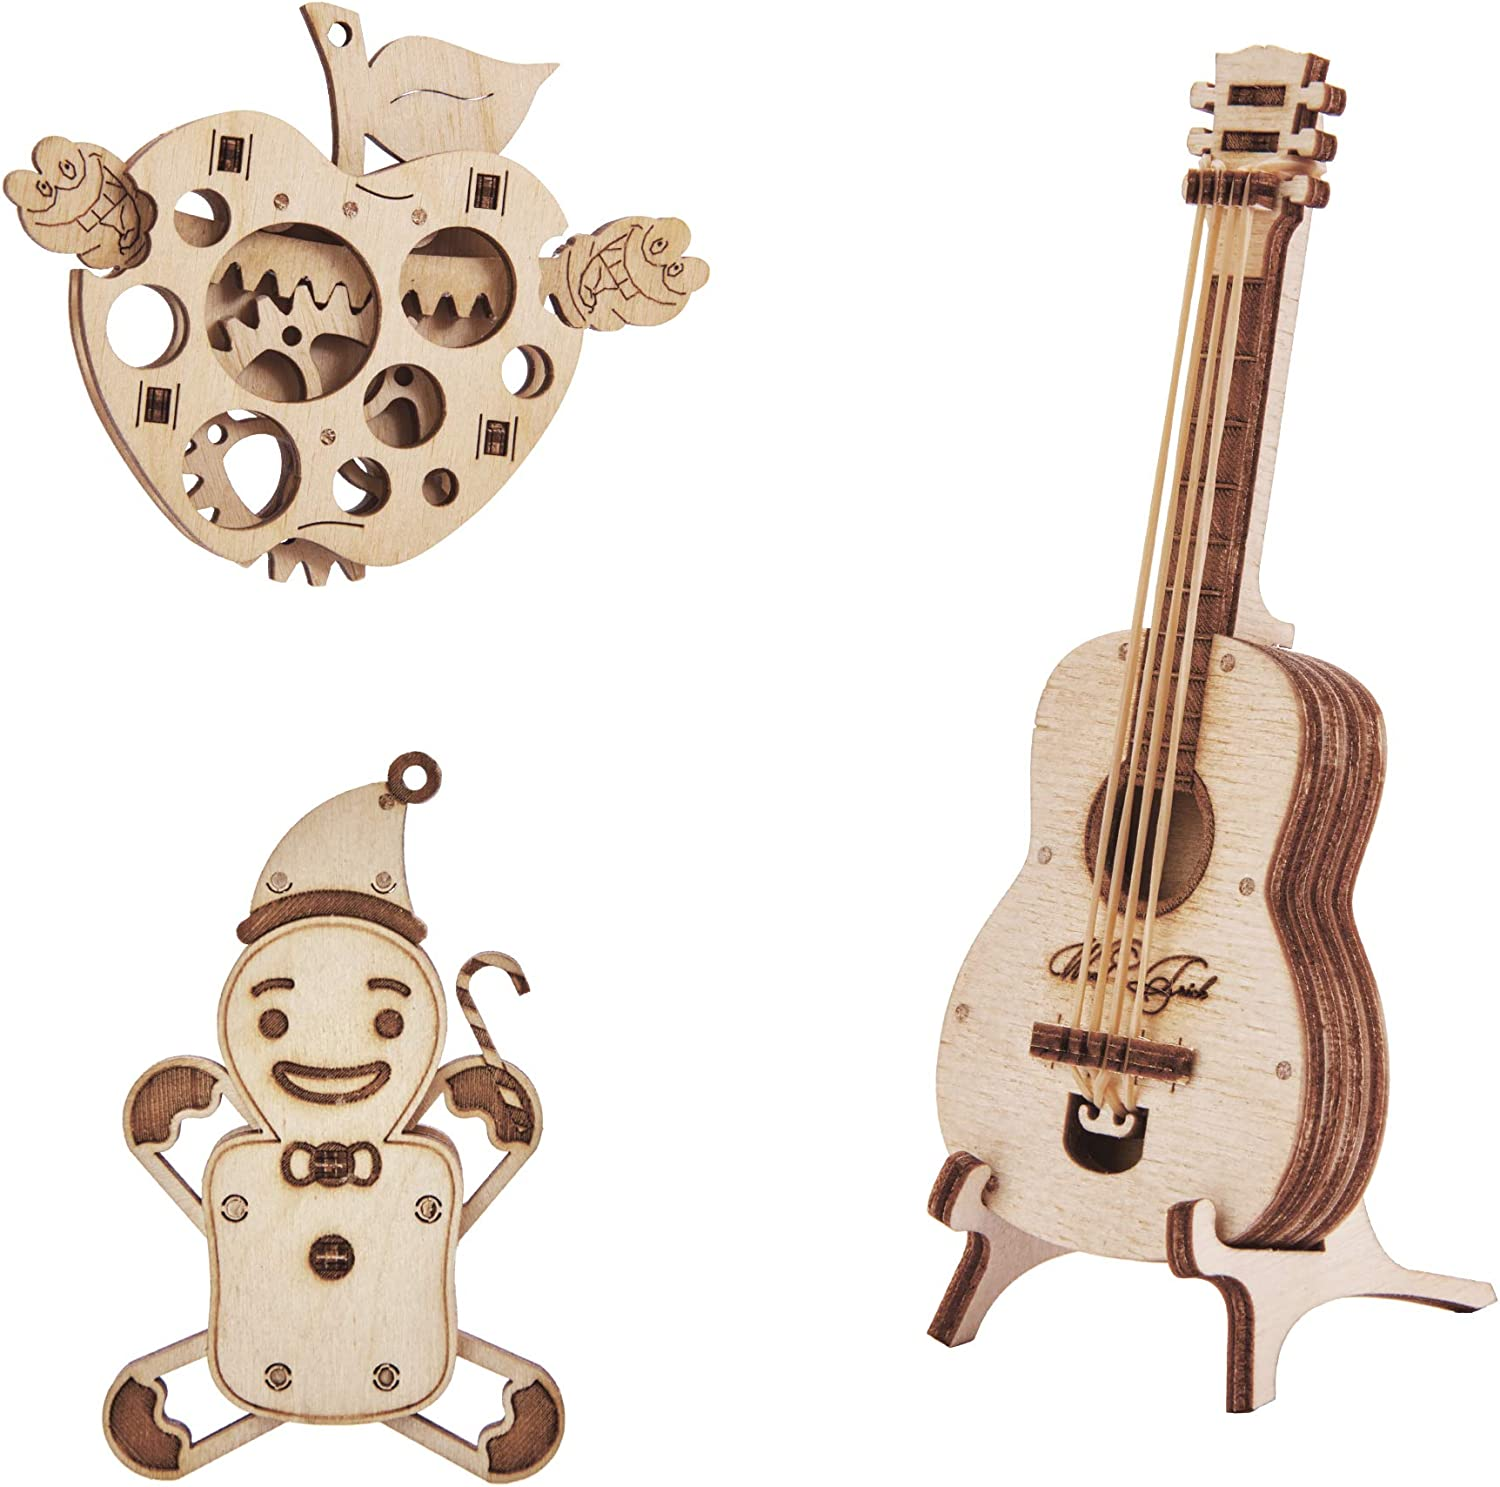 Wood Trick Set of Mini 3D Puzzles - Gingerbread, Guitar, Apple - 3D Wooden Puzzle - Great STEM Project for Beginners